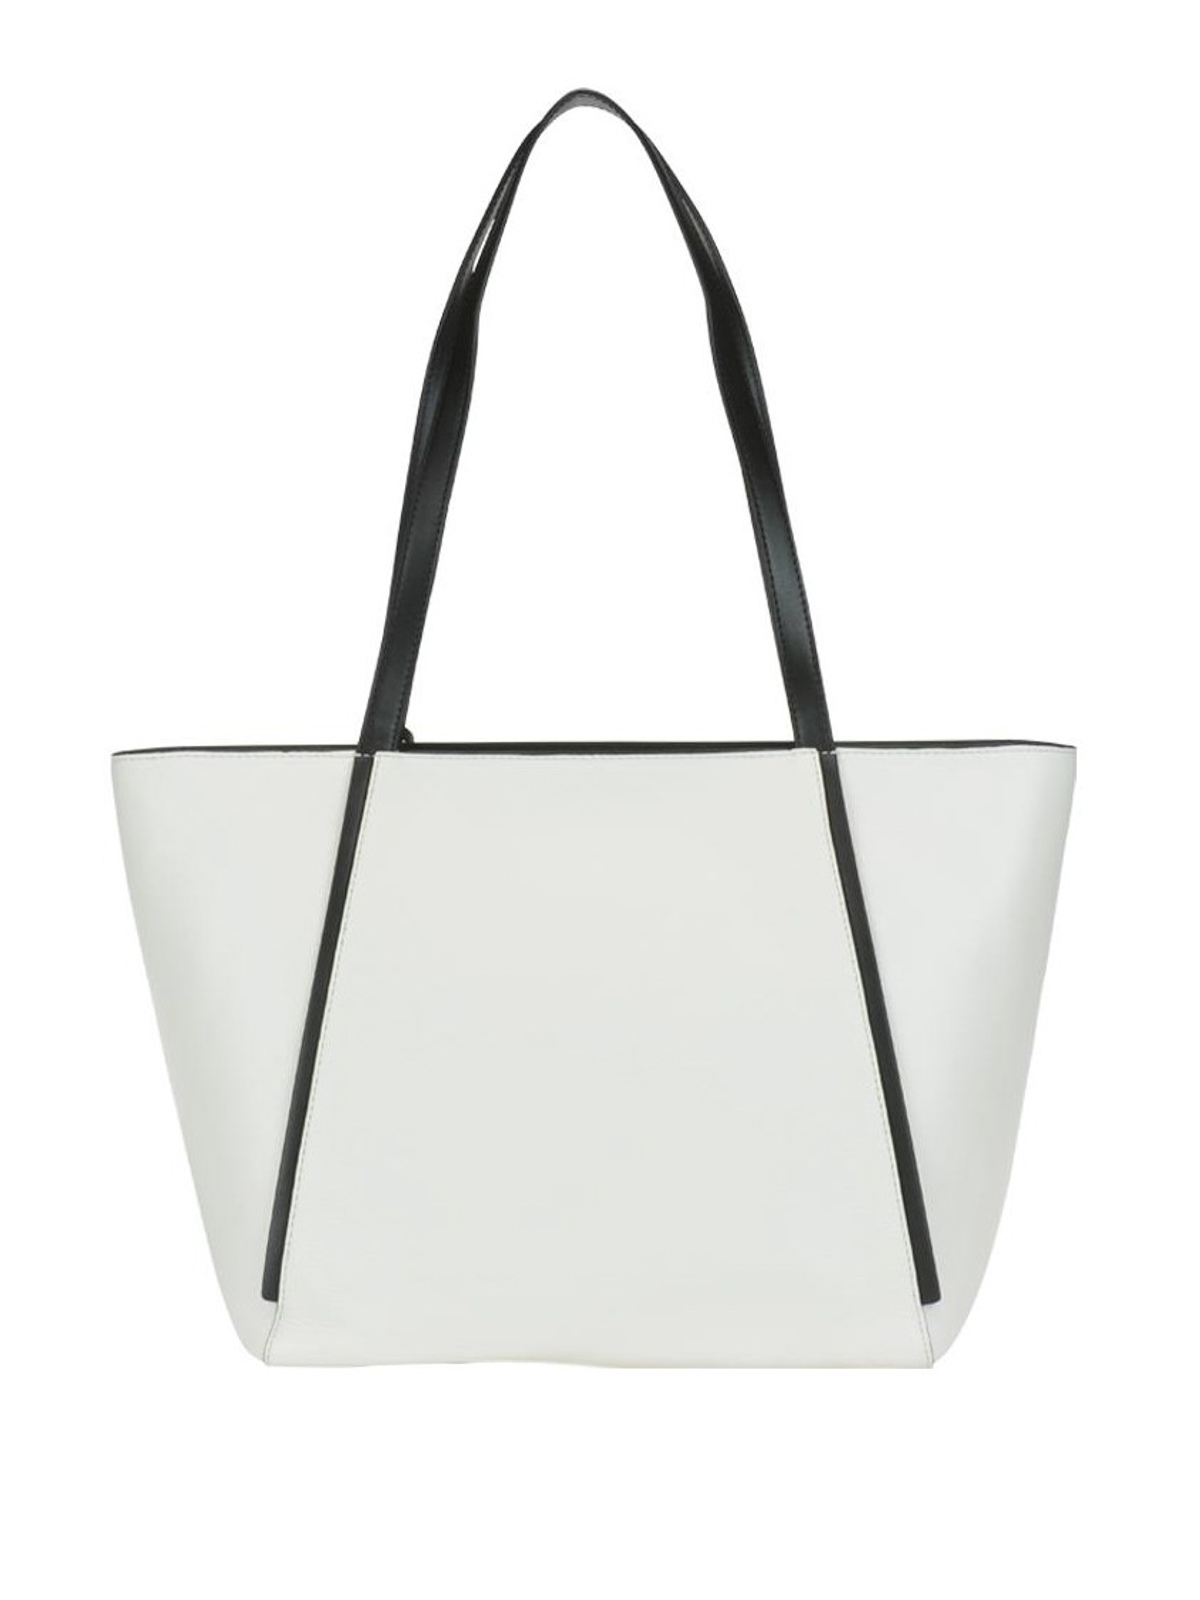 2bb649626bd4 iKRIX MICHAEL KORS: totes bags - Whitney bicolour leather large tote